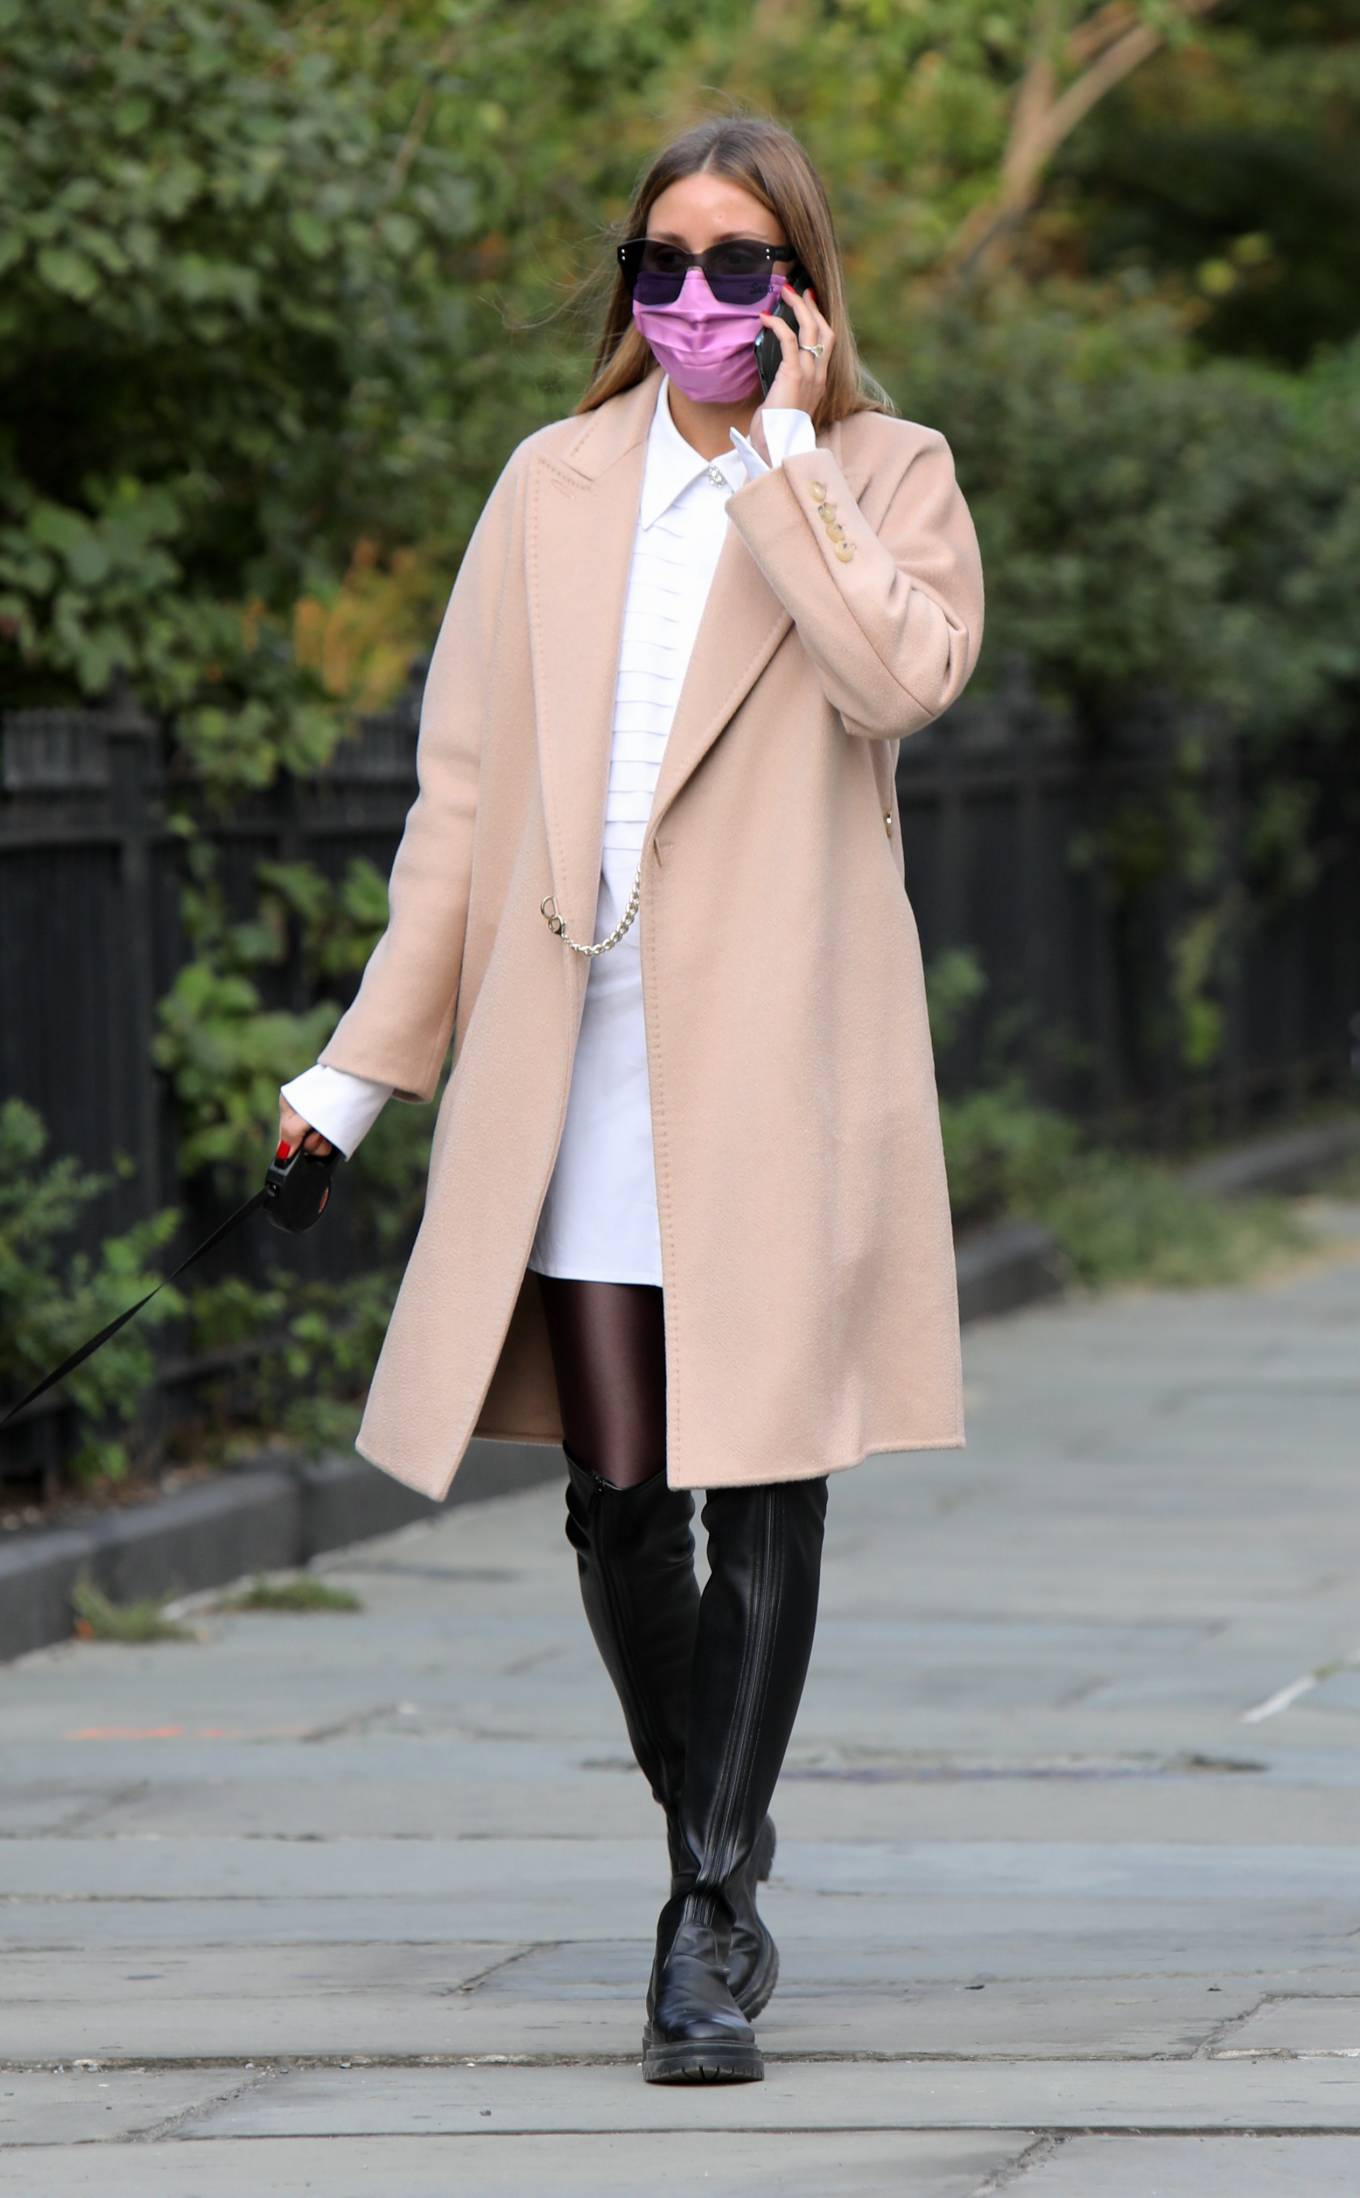 Olivia Palermo 2020 : Olivia Palermo – Wearing a white short dress under a coat while out for a walk in Manhattan-02